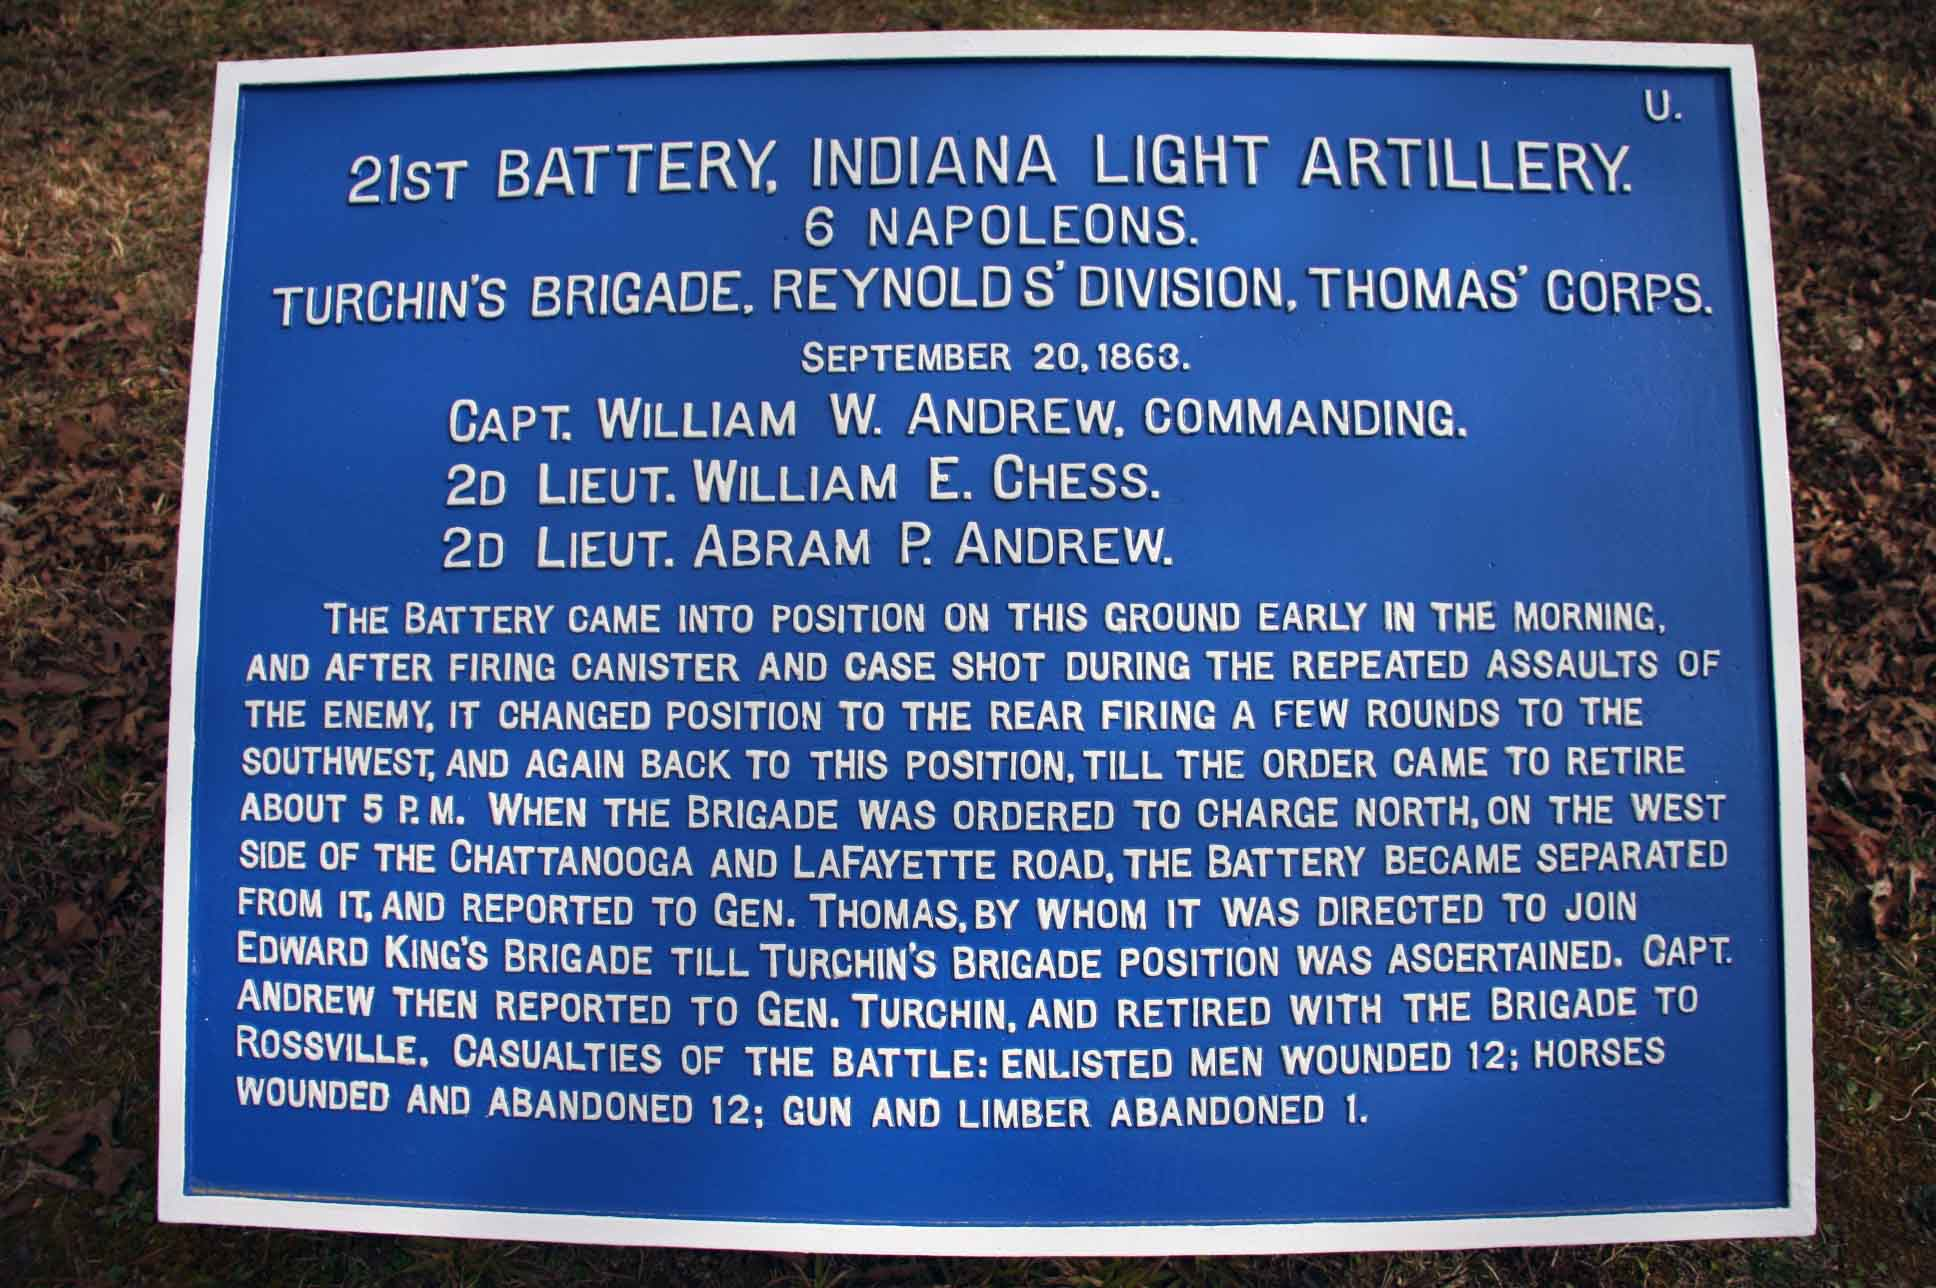 21st Battery, Indiana Light Artillery Plaque, click photo to enlarge.